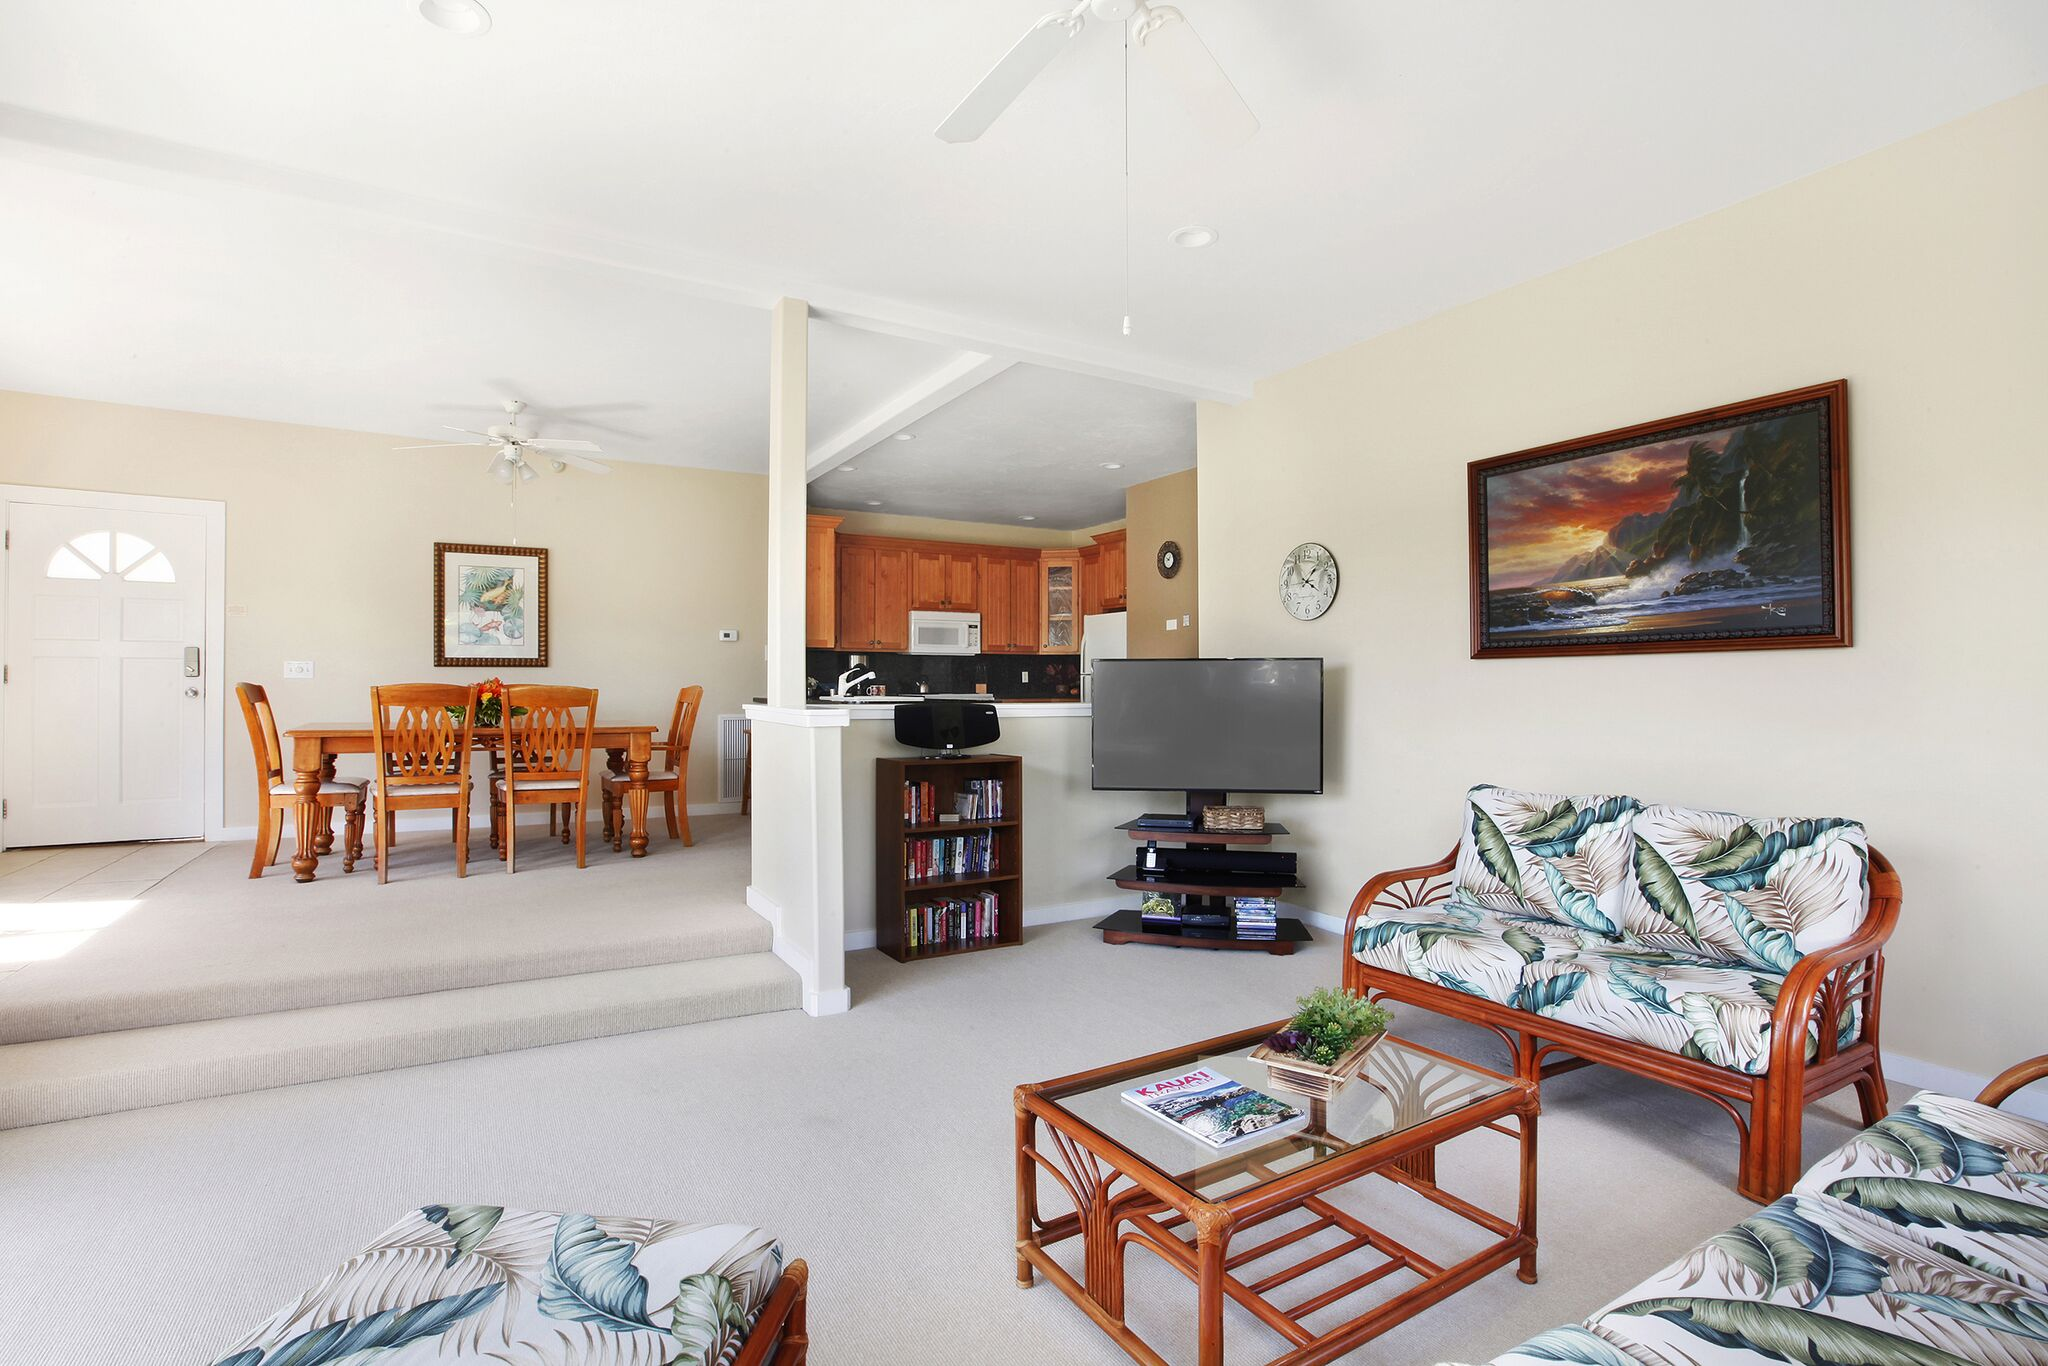 Wonderful Kauai Abode Perfectly Located within Minutes of Poipu Beach